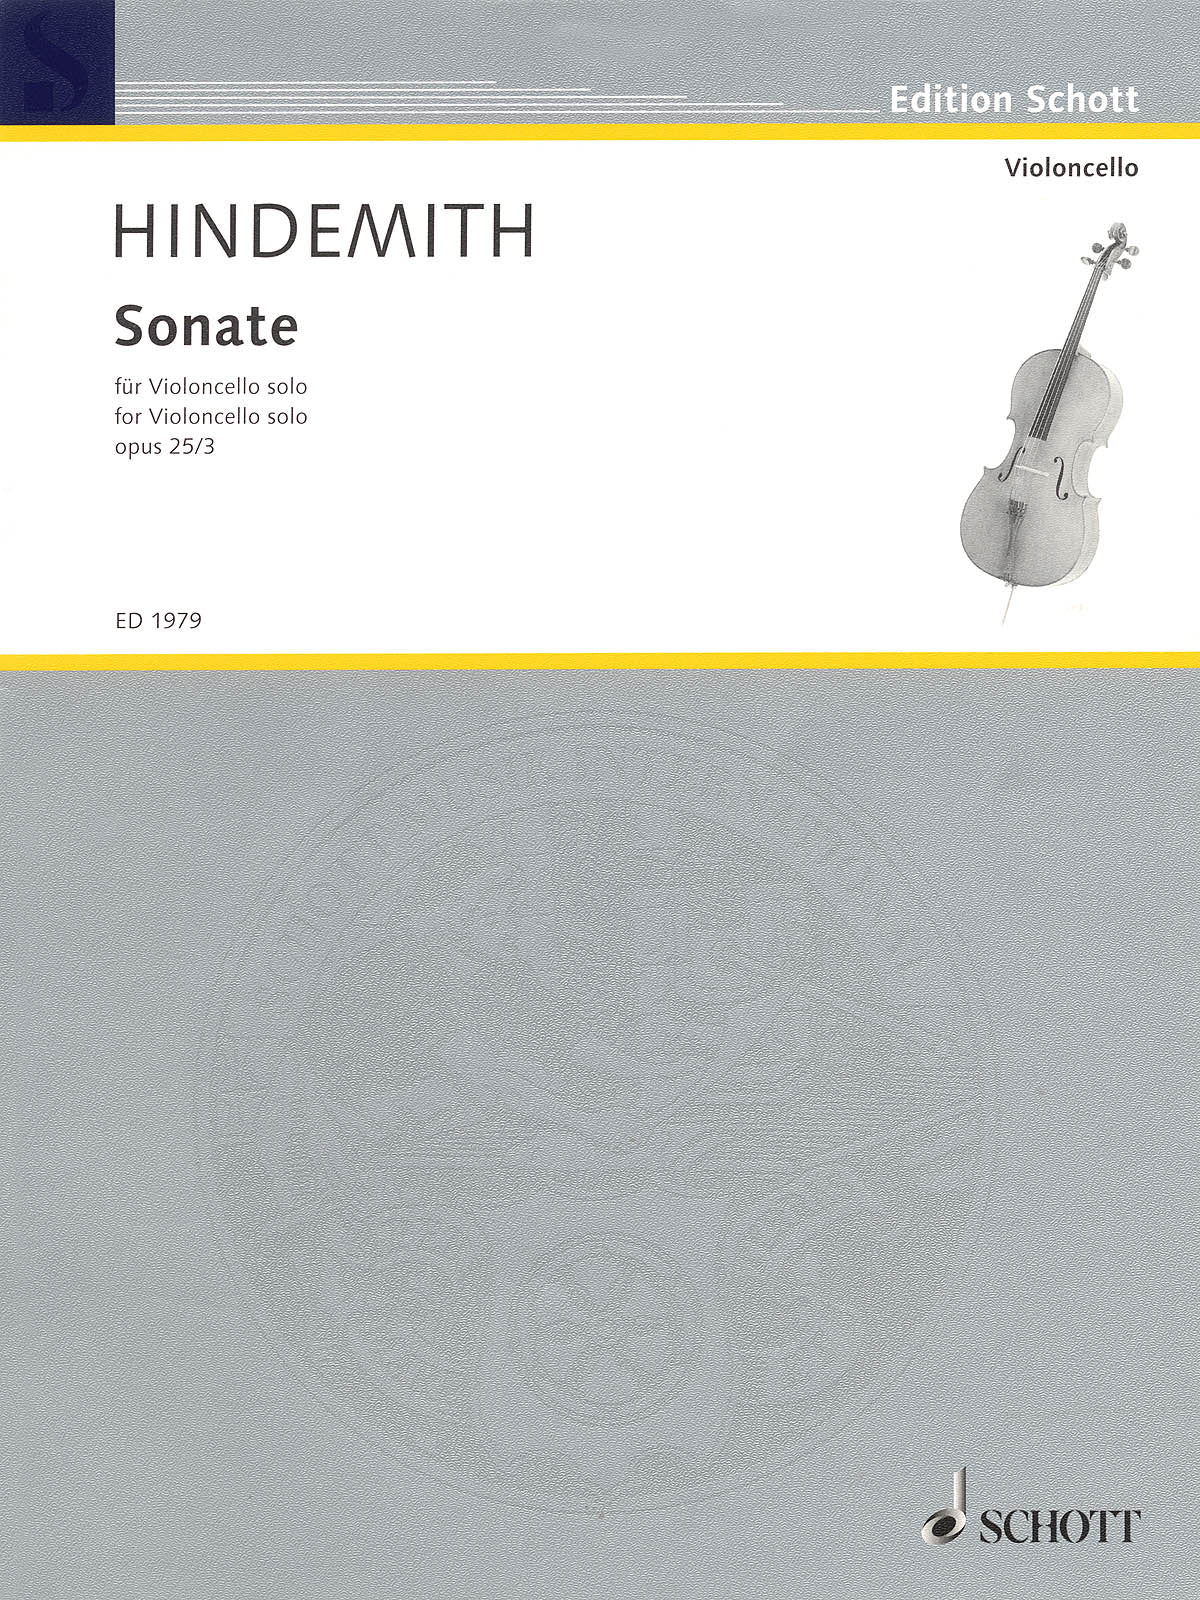 Hindemith: Sonata for Solo Cello, Op. 25, No. 3